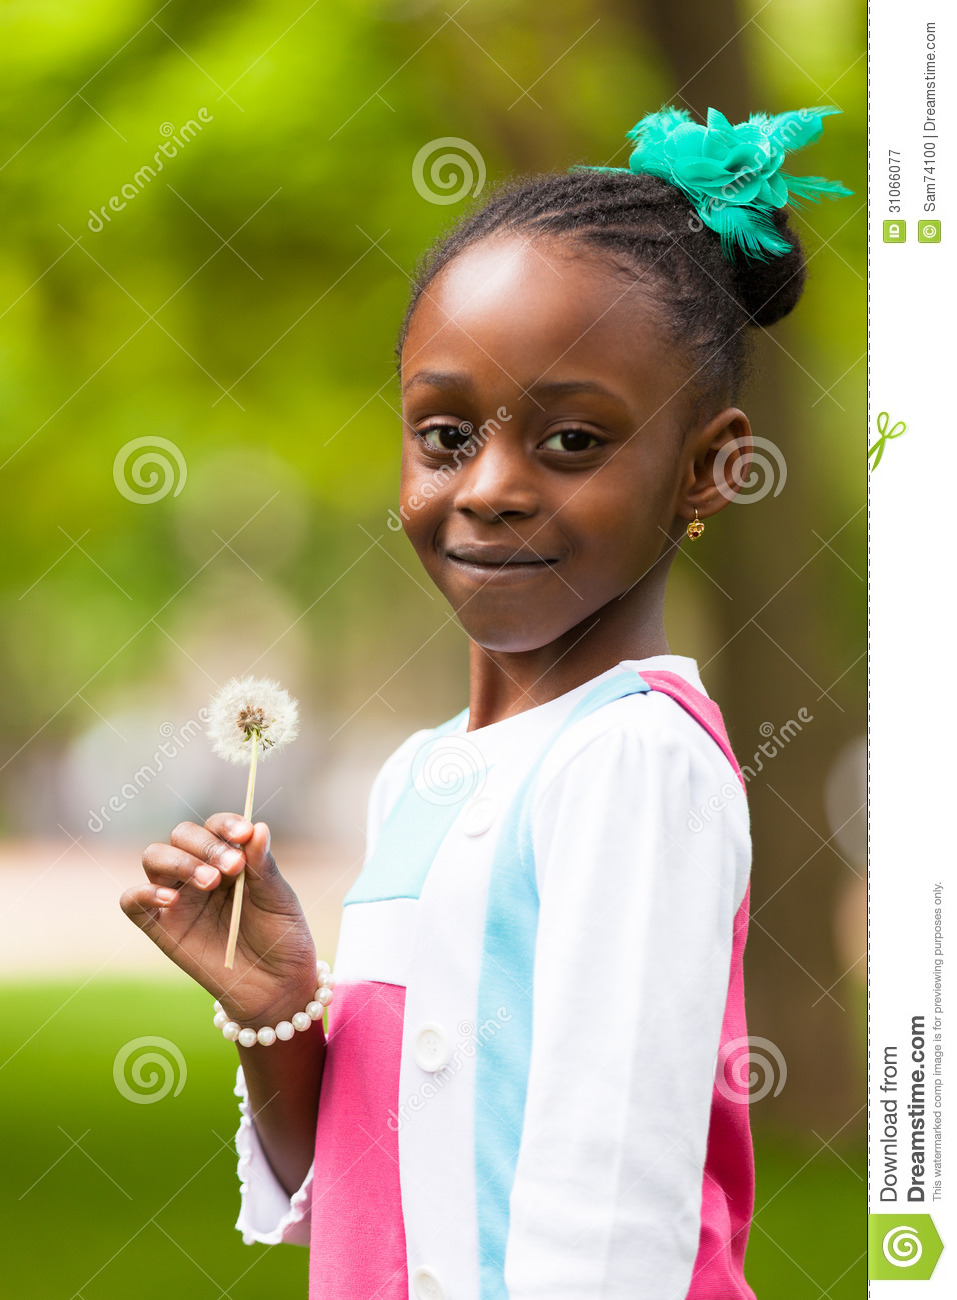 young blakc Outdoor portrait of a cute young black girl holding a dandelion